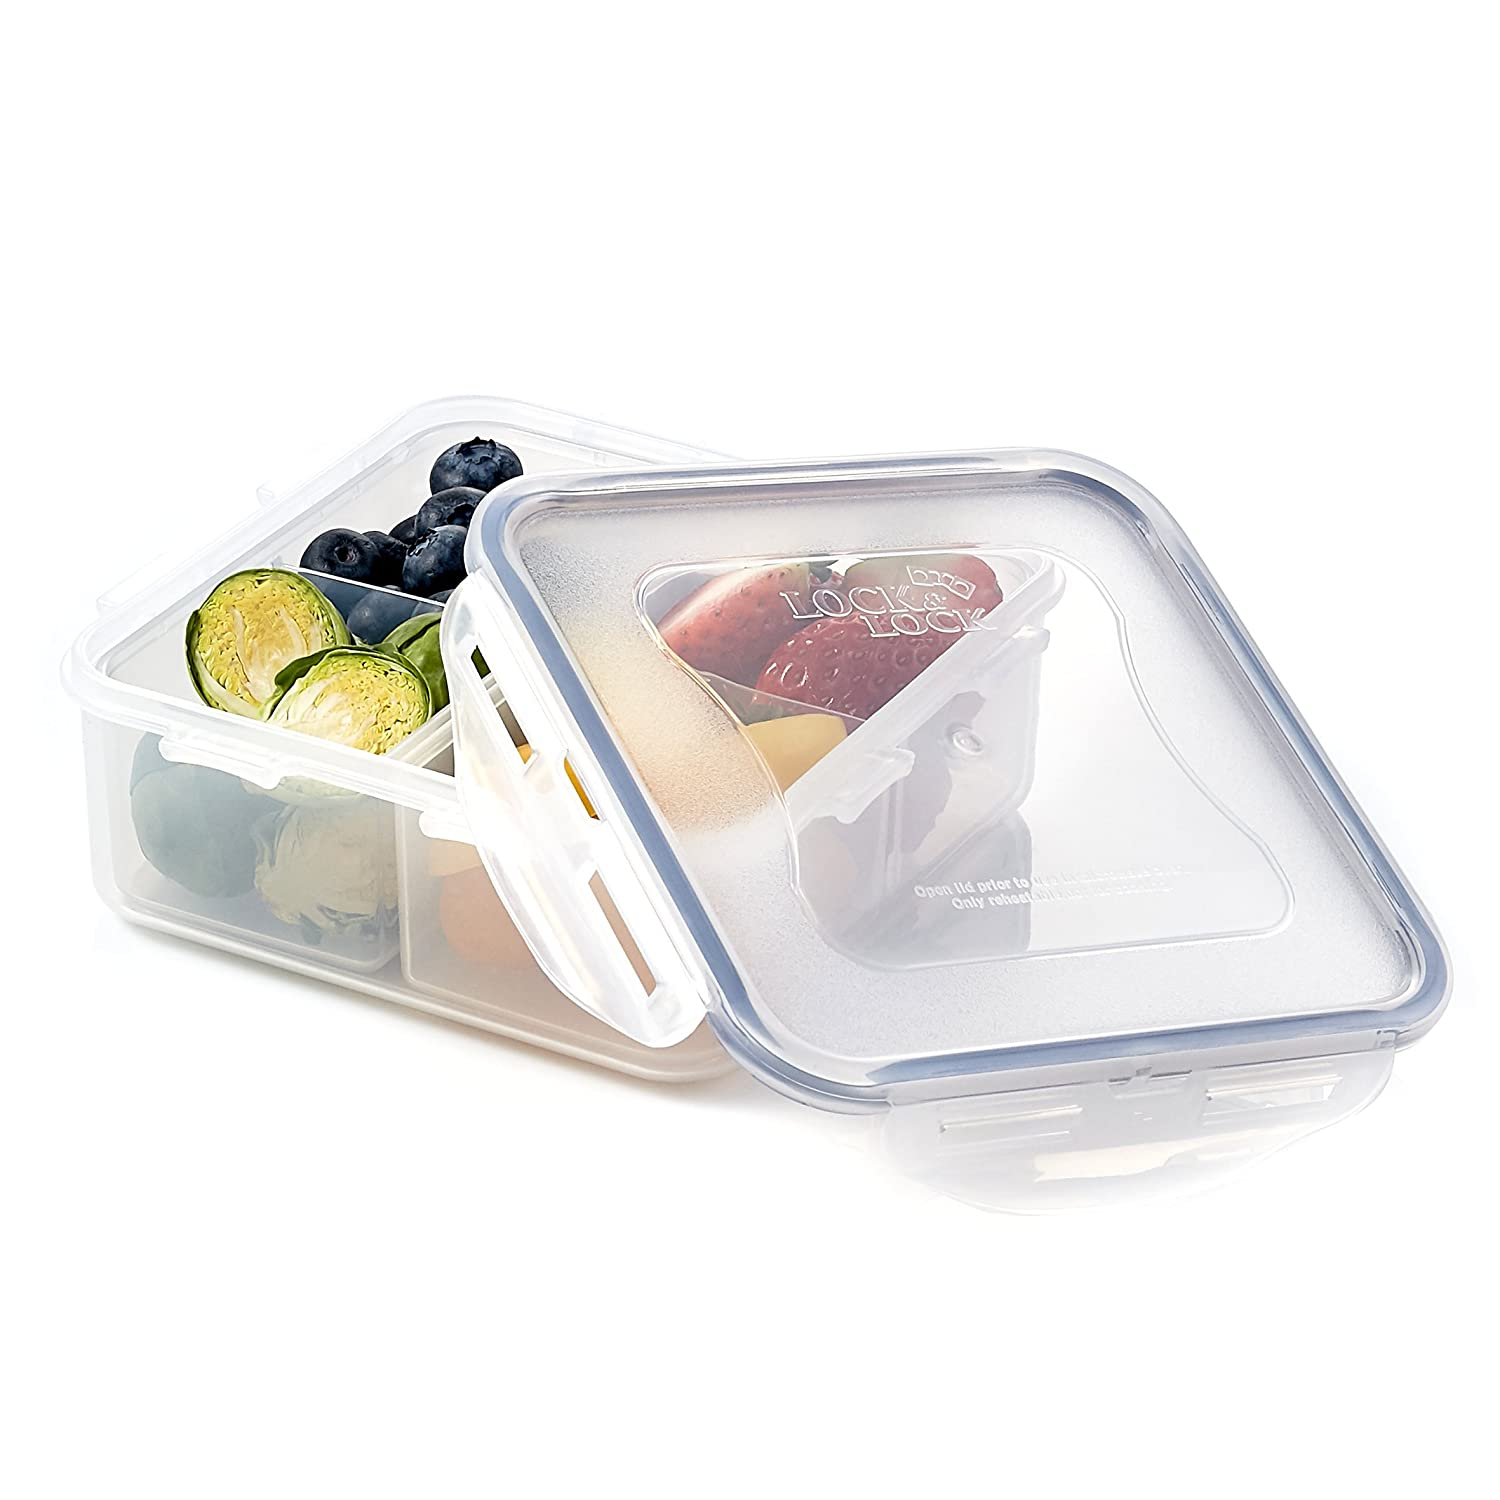 Charmant Amazon.com: LOCK U0026 LOCK Airtight Square Food Storage Container With  Removable Divider 29.41 Oz / 3.68 Cup: Food Savers: Kitchen U0026 Dining